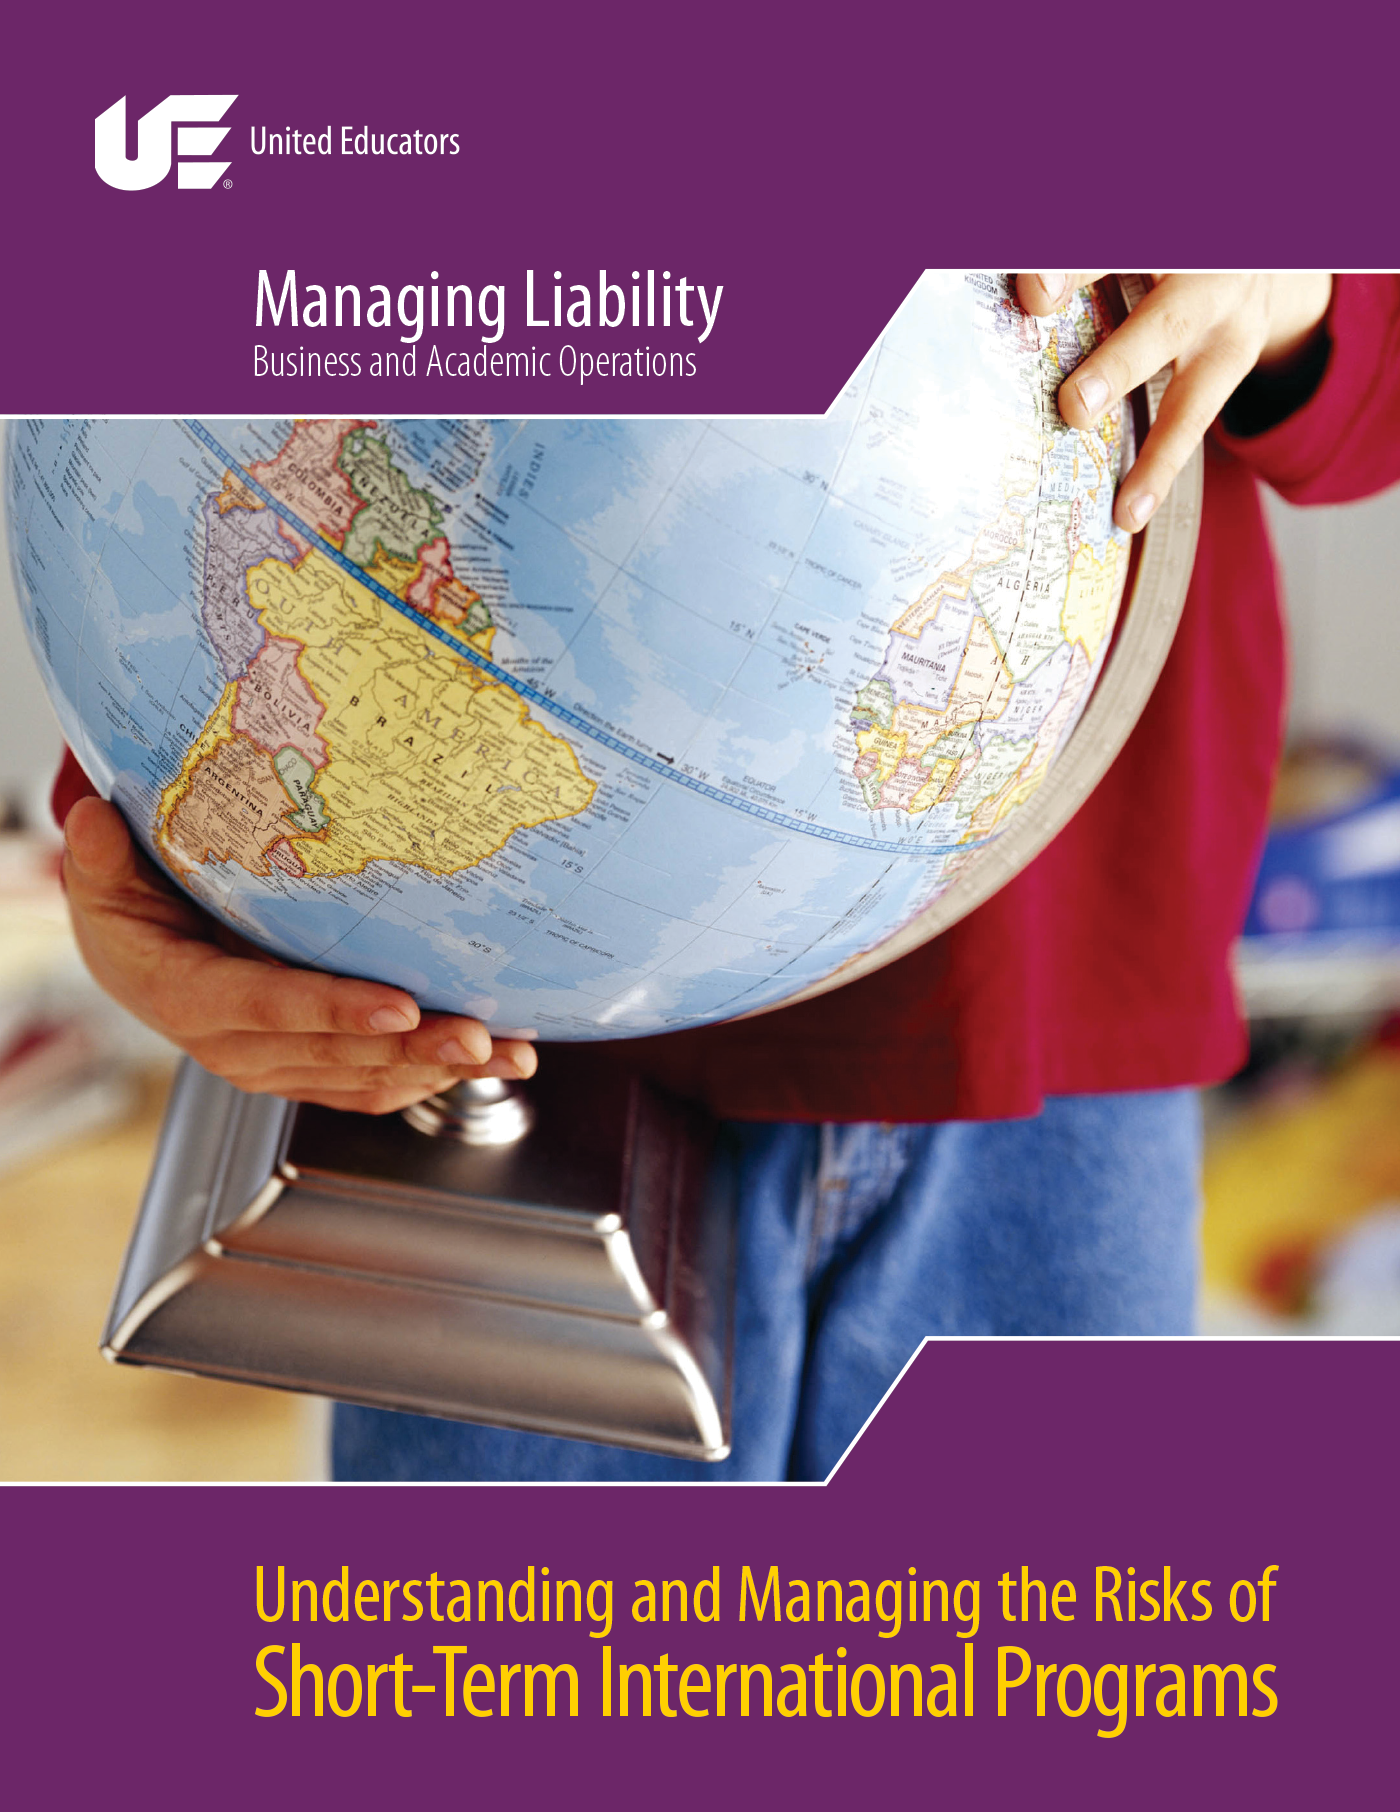 UE Managing Liability Business and Academic Operations